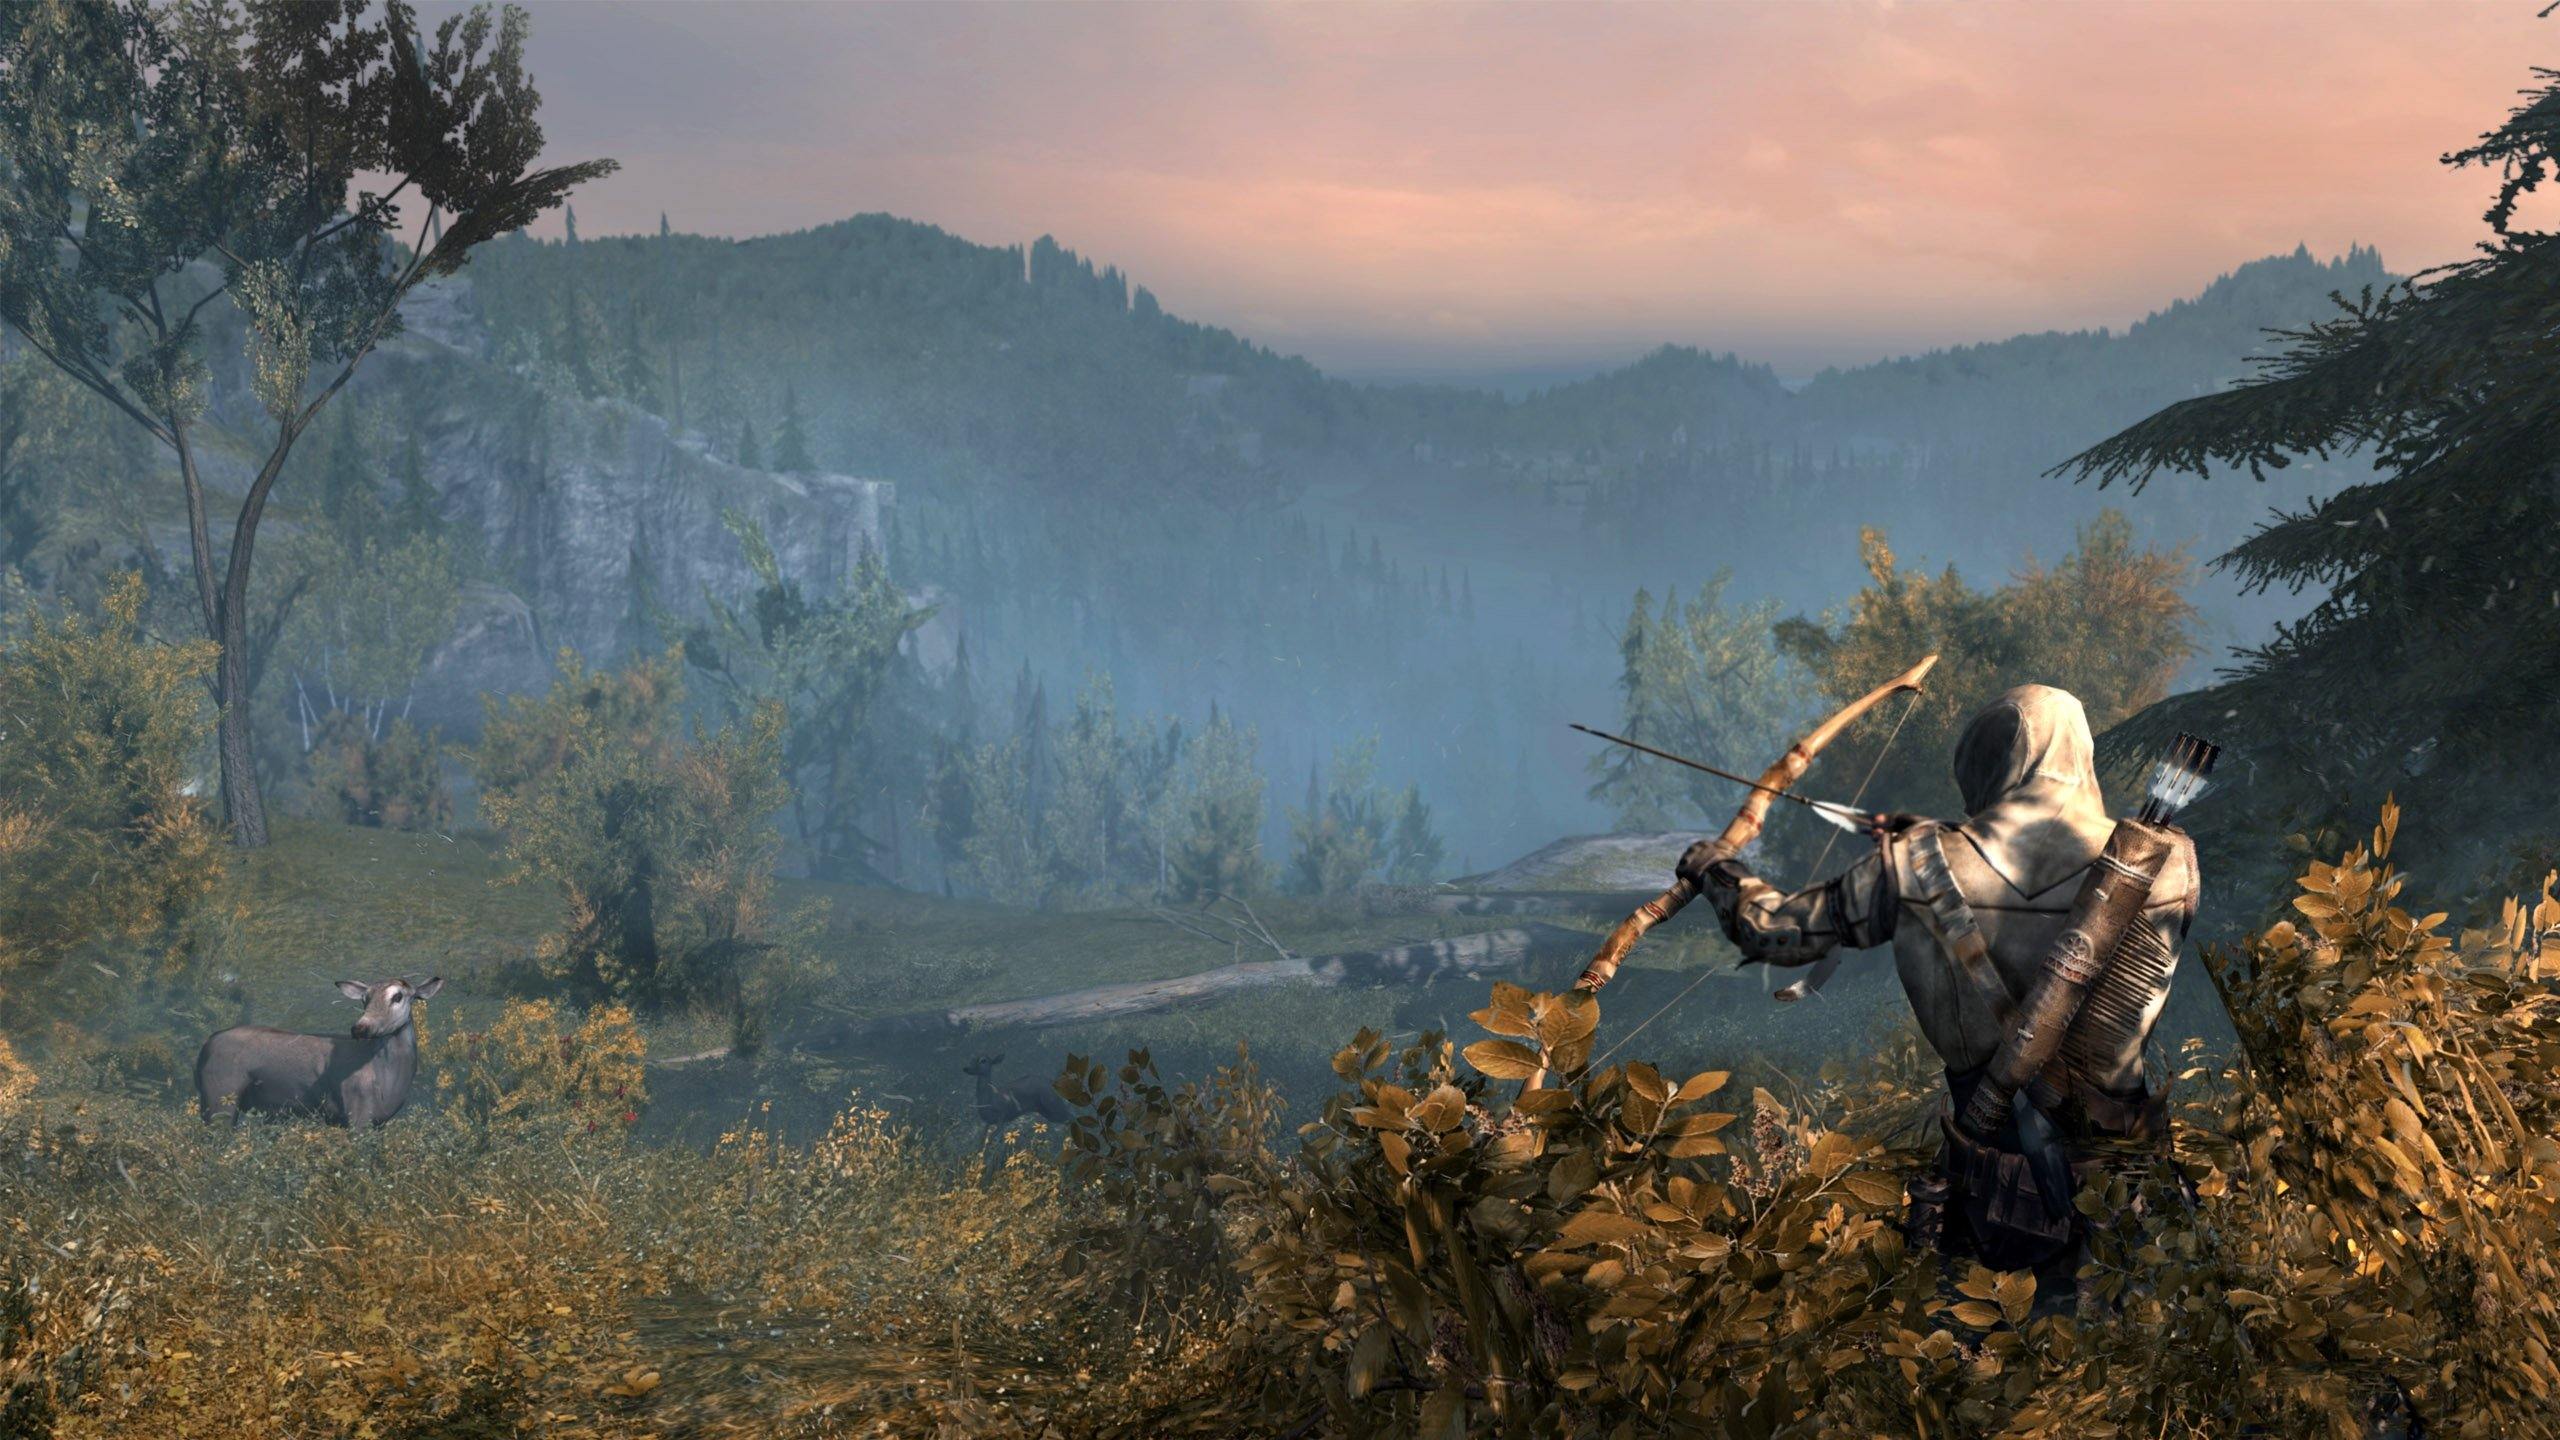 archery archer bow arrow hunting weapon assassins creed wallpaper